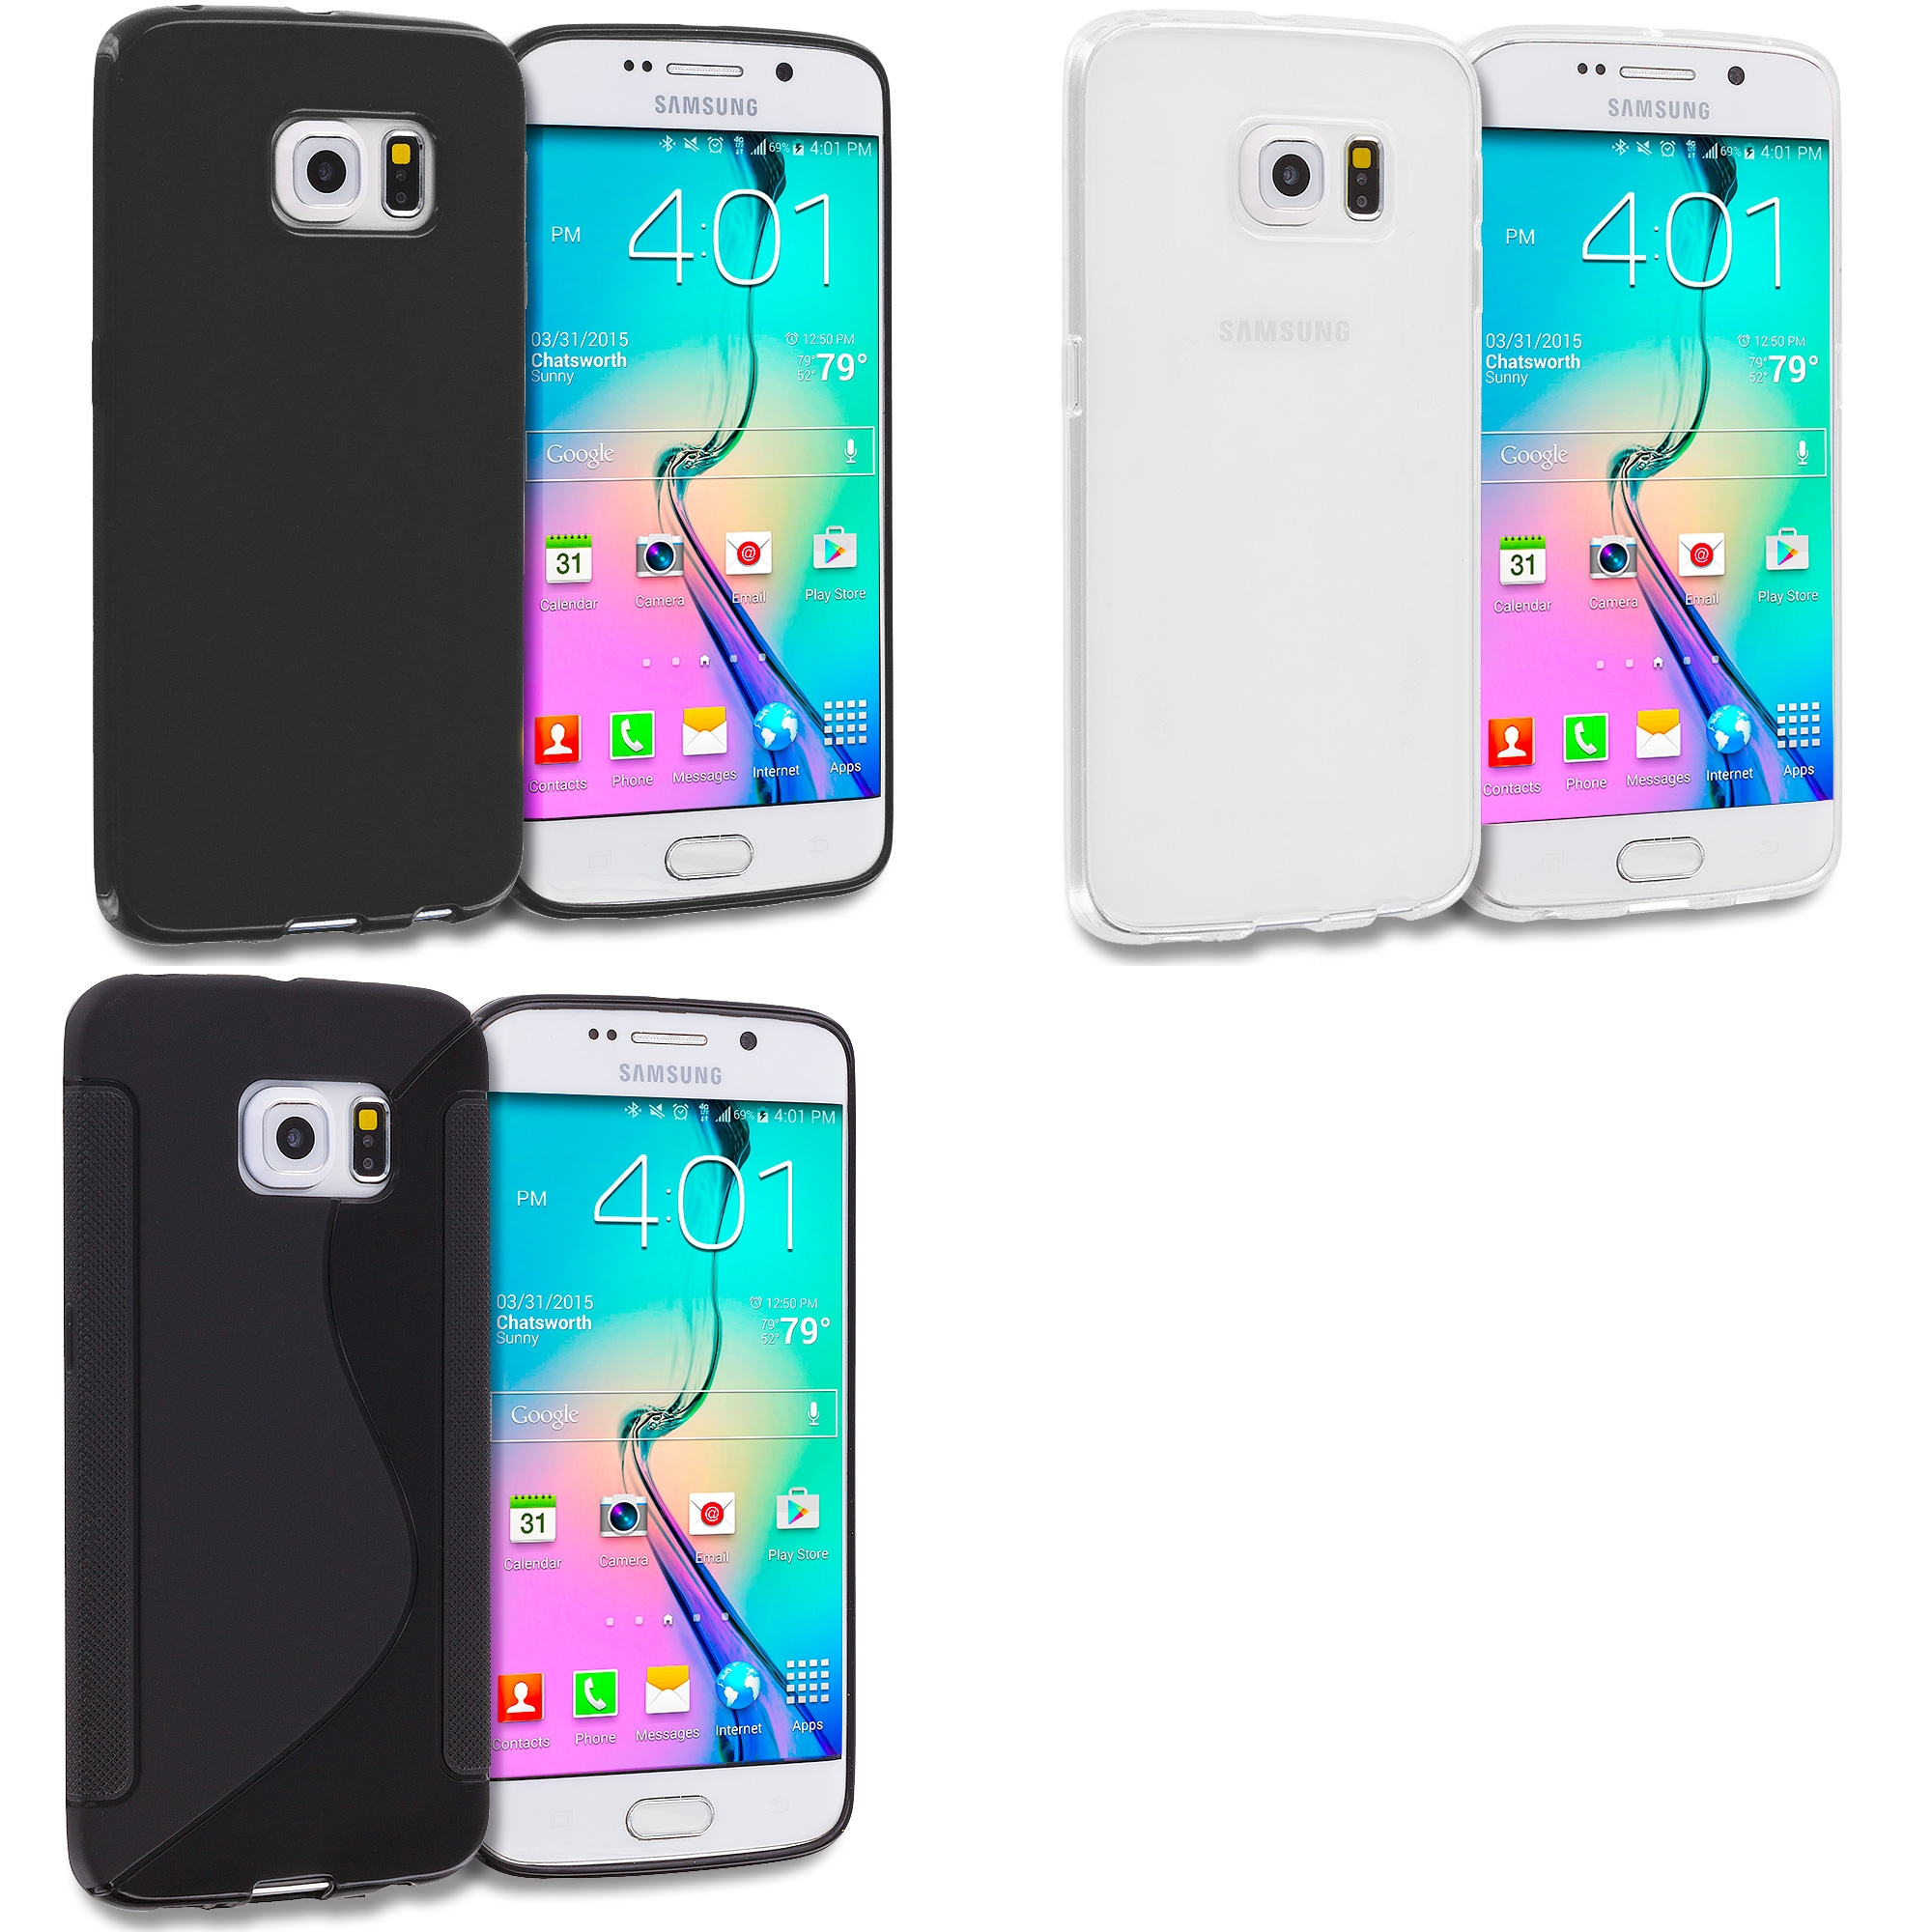 Samsung Galaxy S6 Edge 3 in 1 Combo Bundle Pack - S-Line TPU Rubber Skin Case Cover